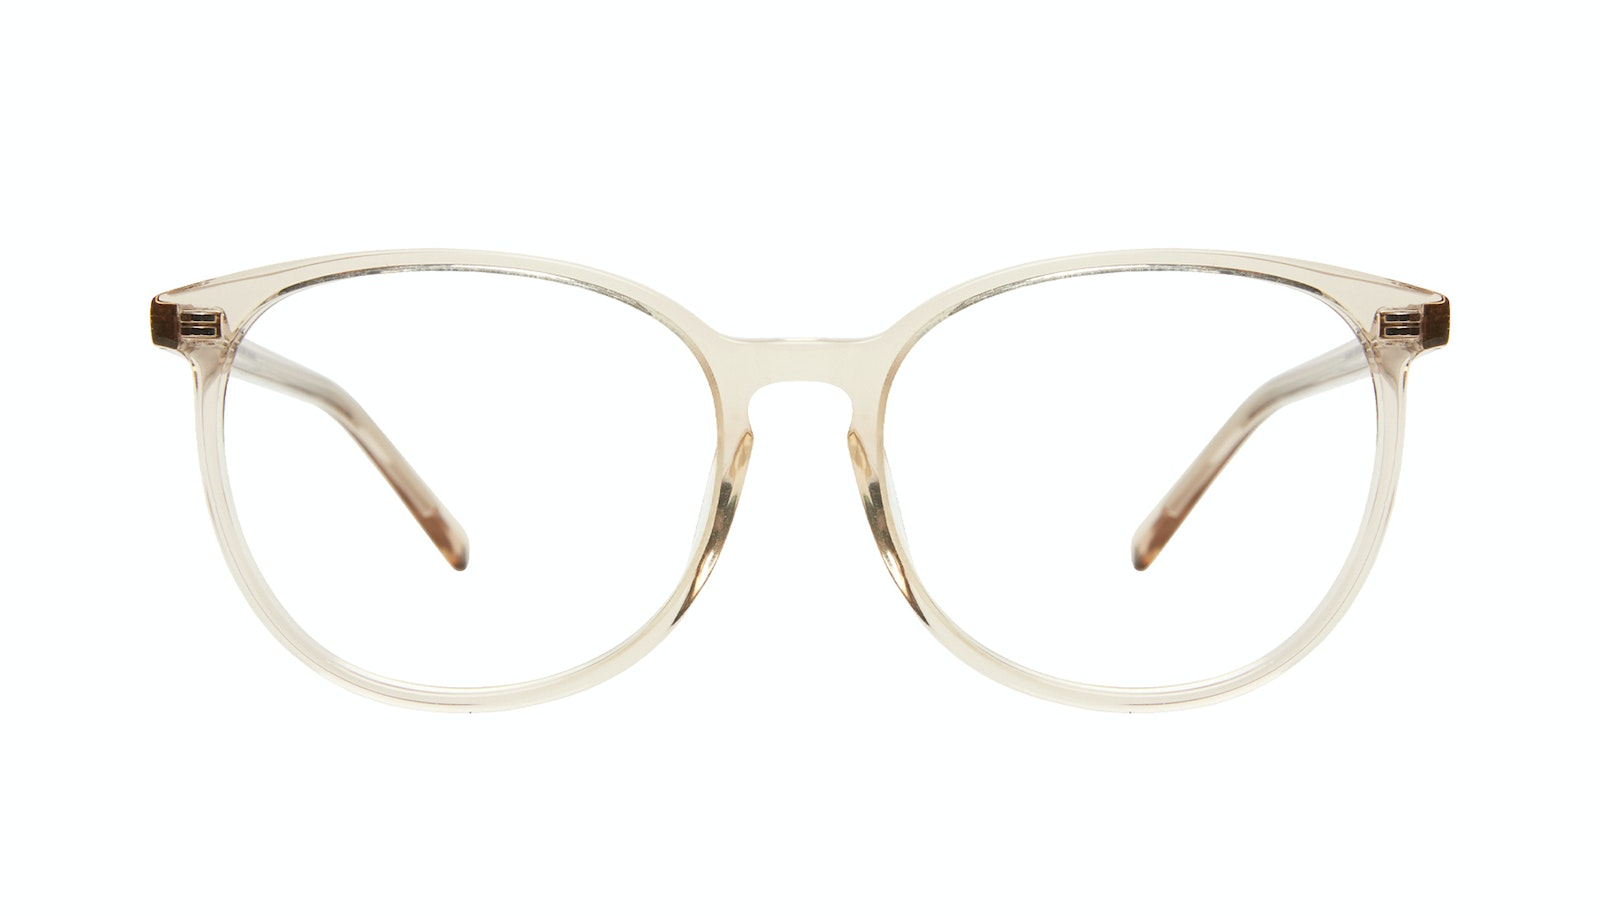 Affordable Fashion Glasses Round Eyeglasses Women Femme Libre L Margo